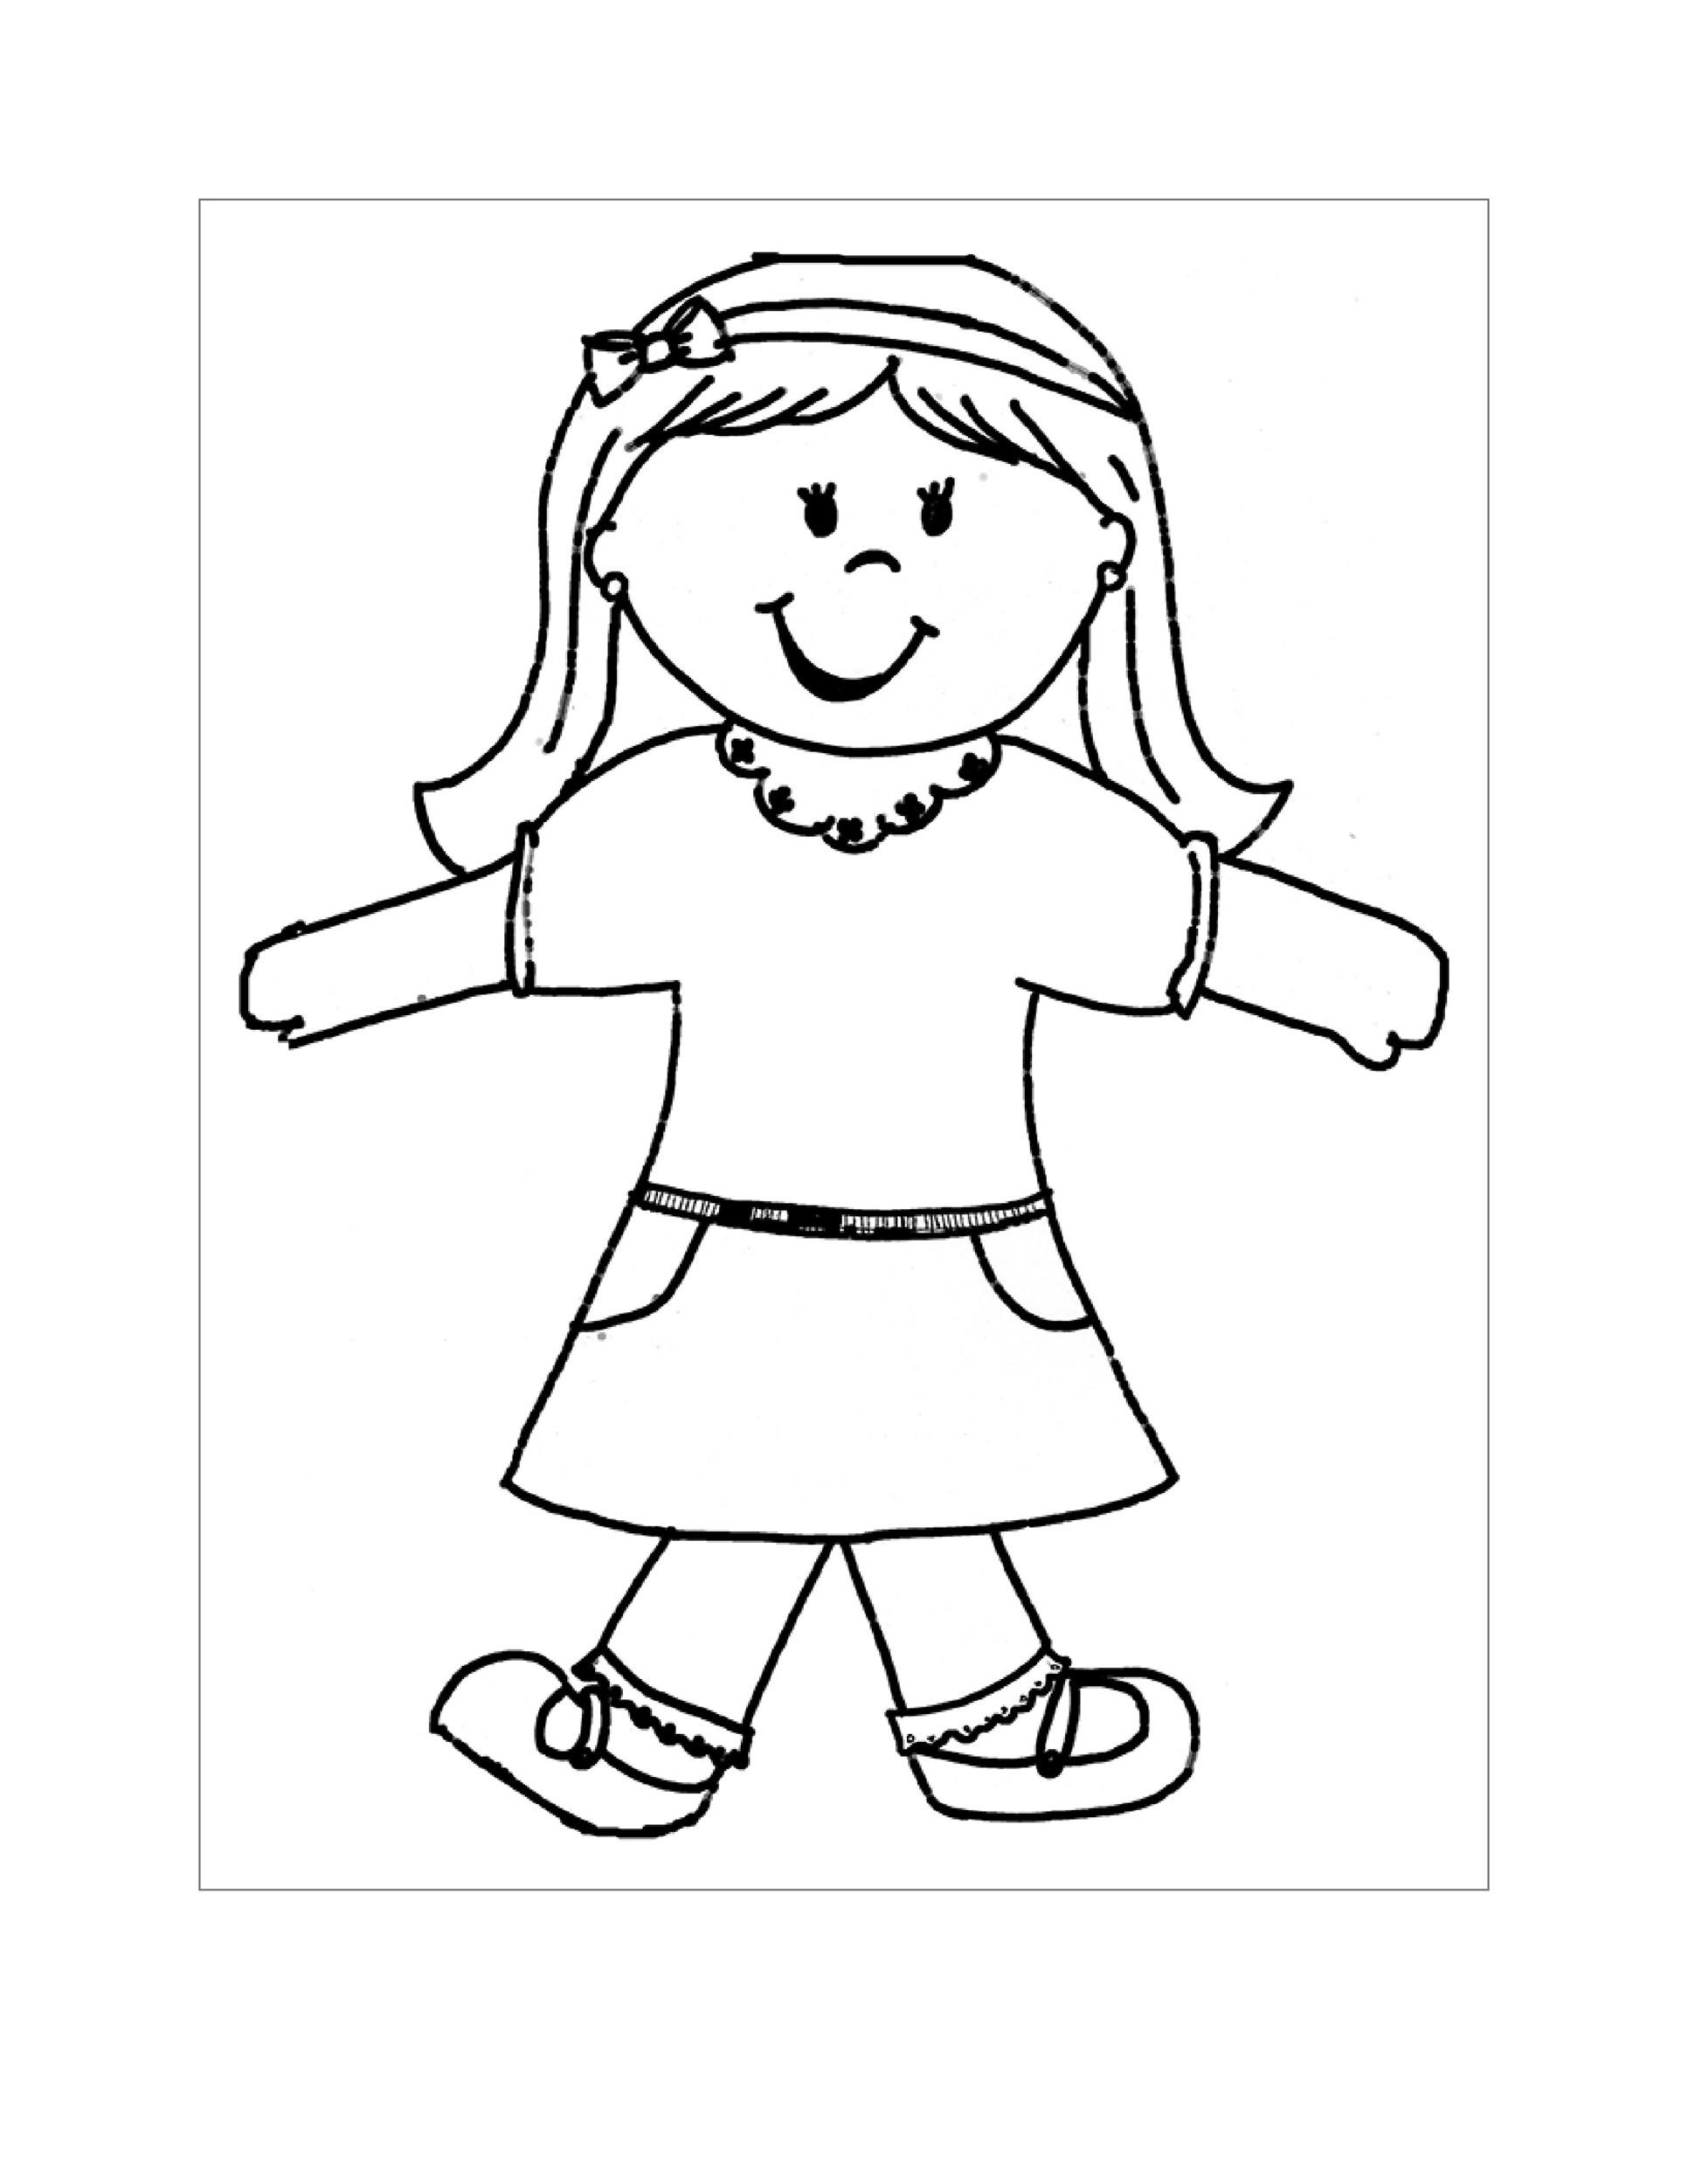 37 Flat Stanley Templates  Letter Examples - Template Lab